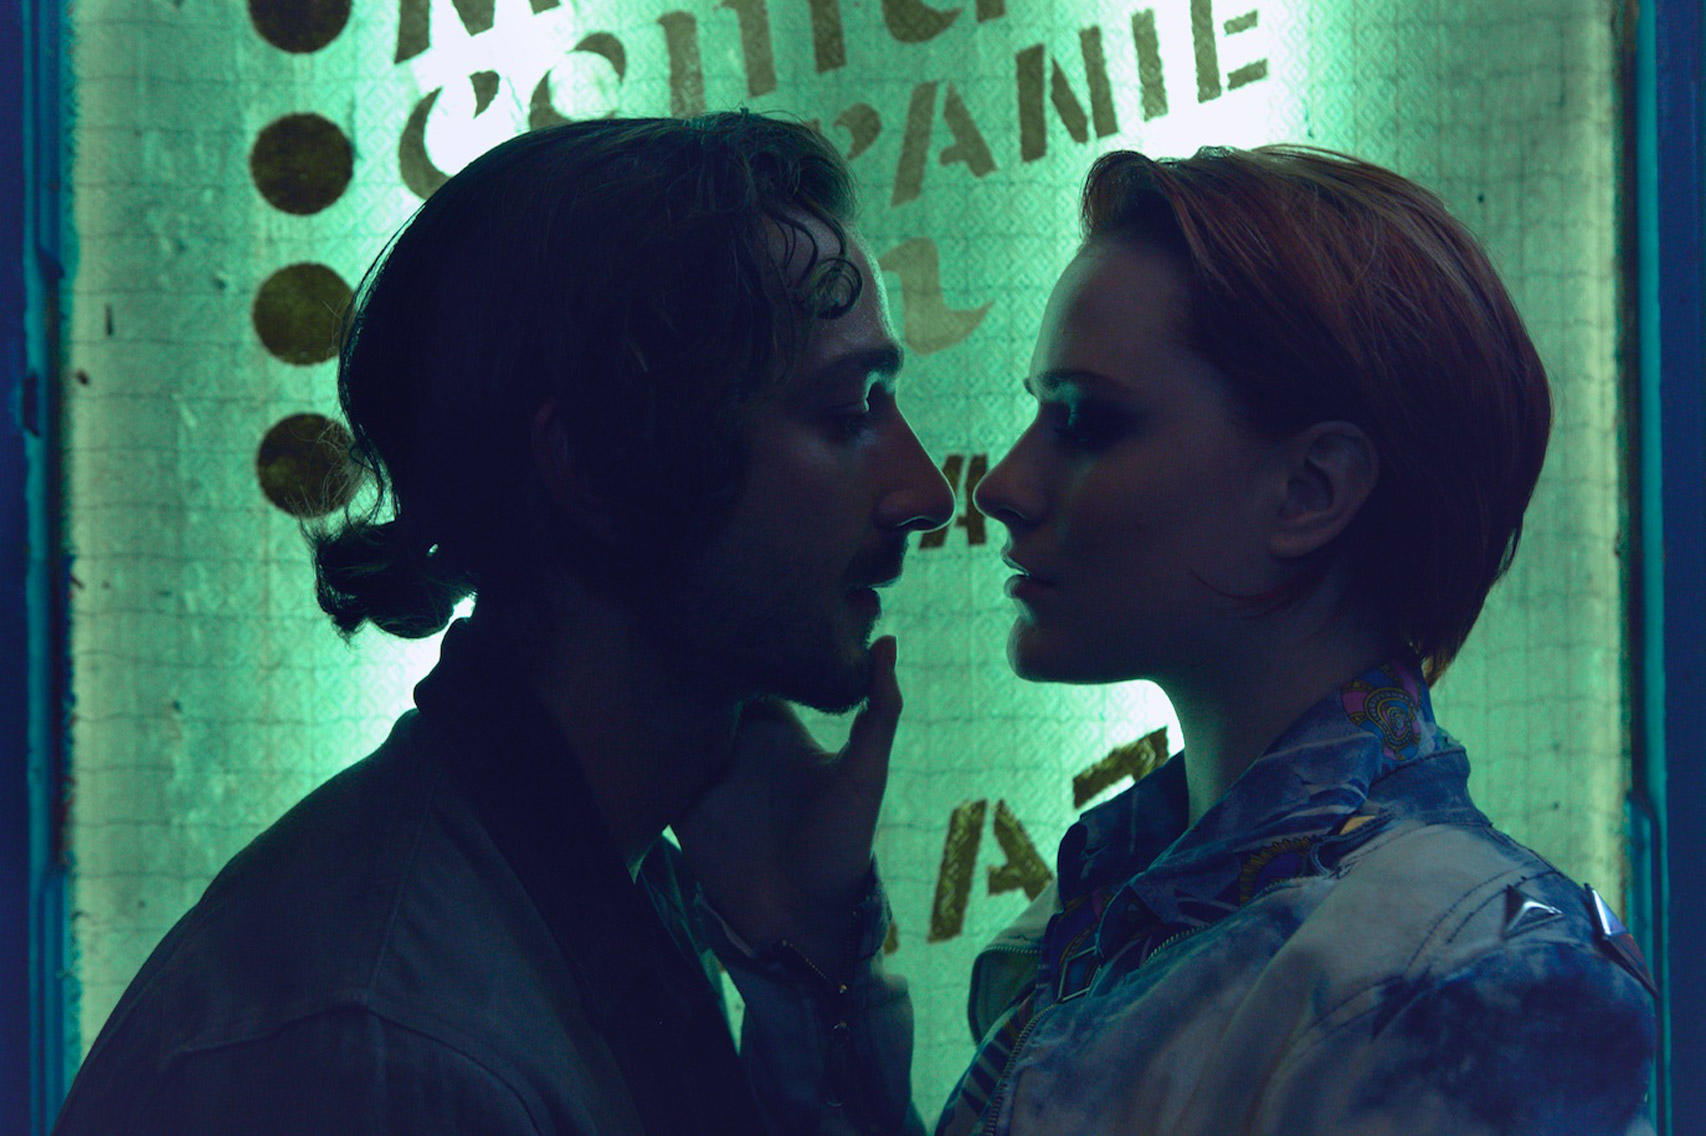 Shia Labeouf as Charlie Countryman and Evan Rachel Wood as Gabi Banyai in